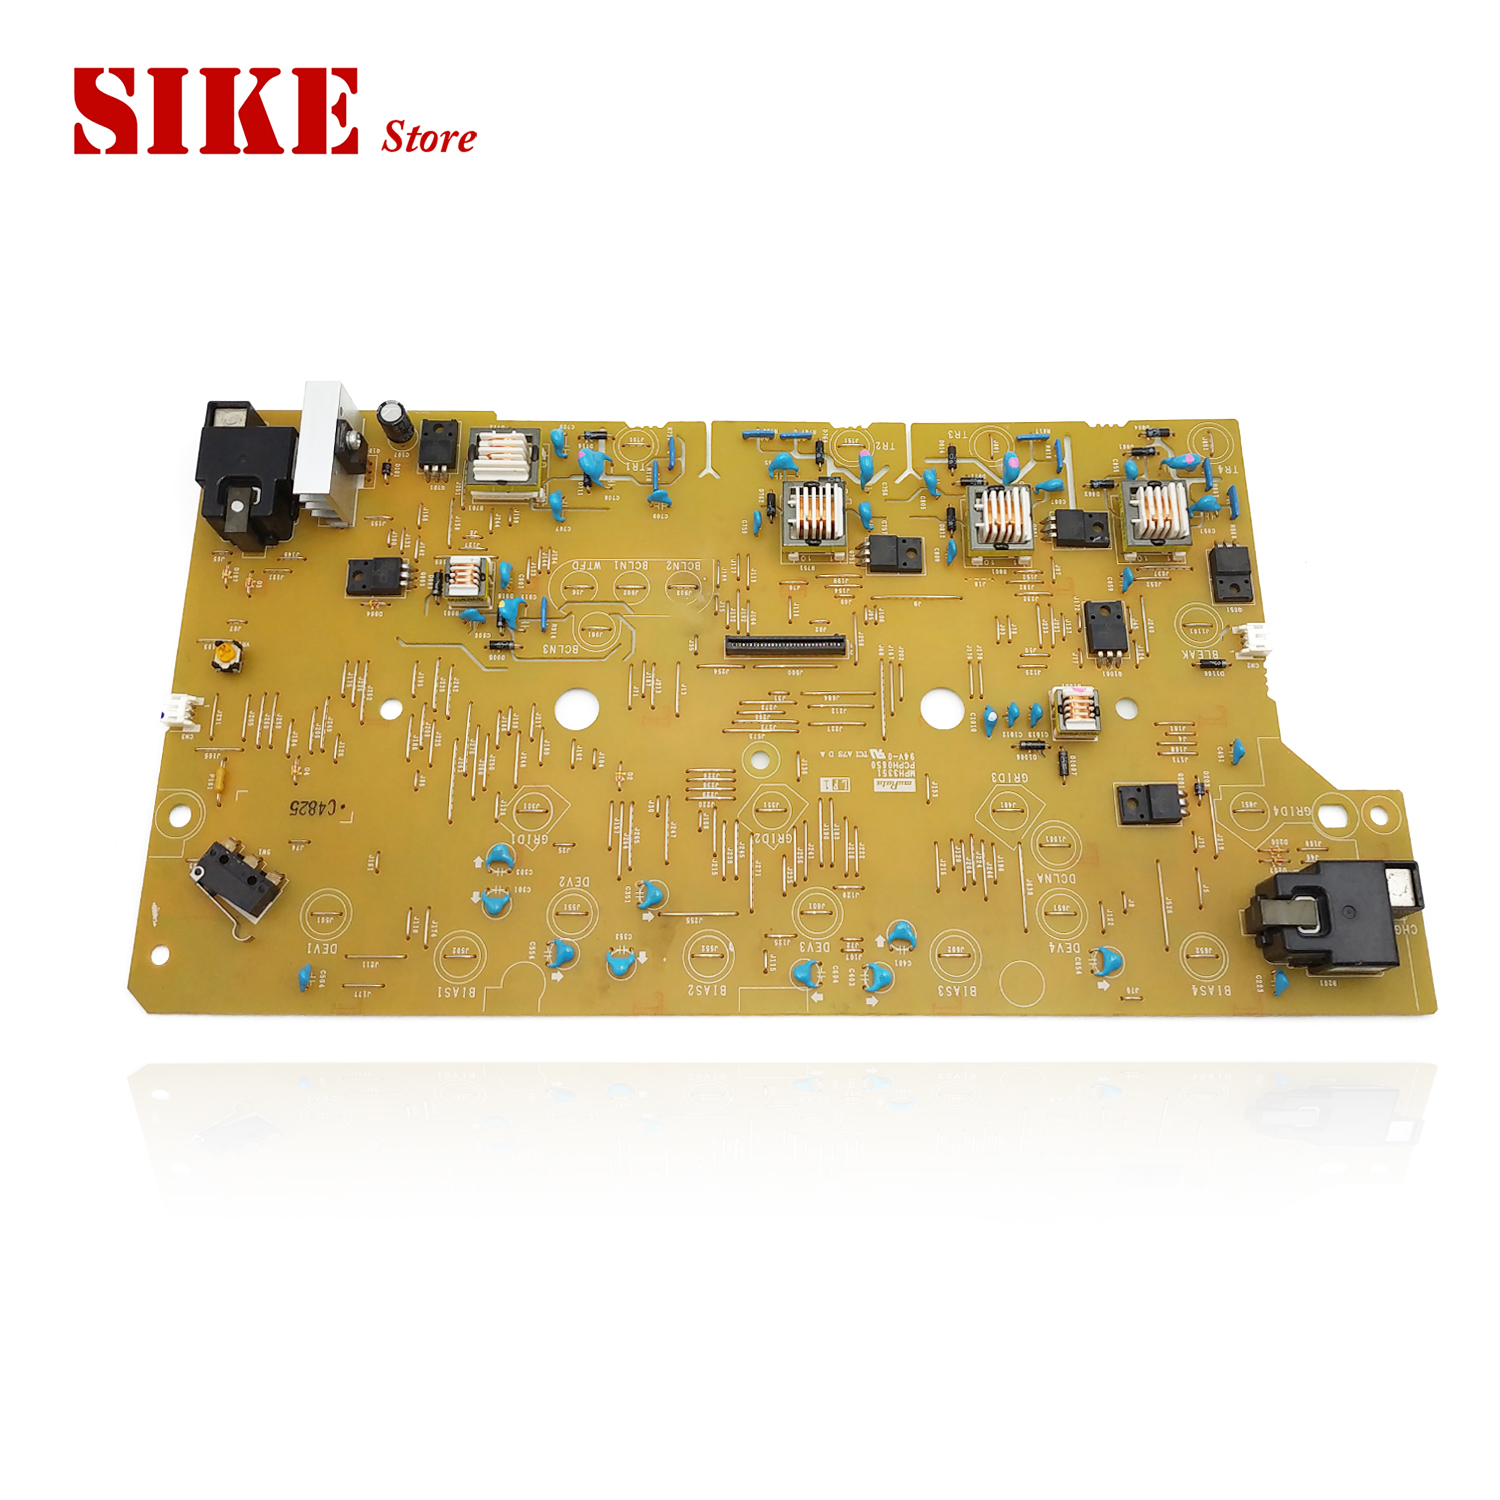 LV0928001 PCB Assy For Brother HL3140 3150 3170 3140 DCP9020 MFC9120 9130 9133 9140 9330 9120